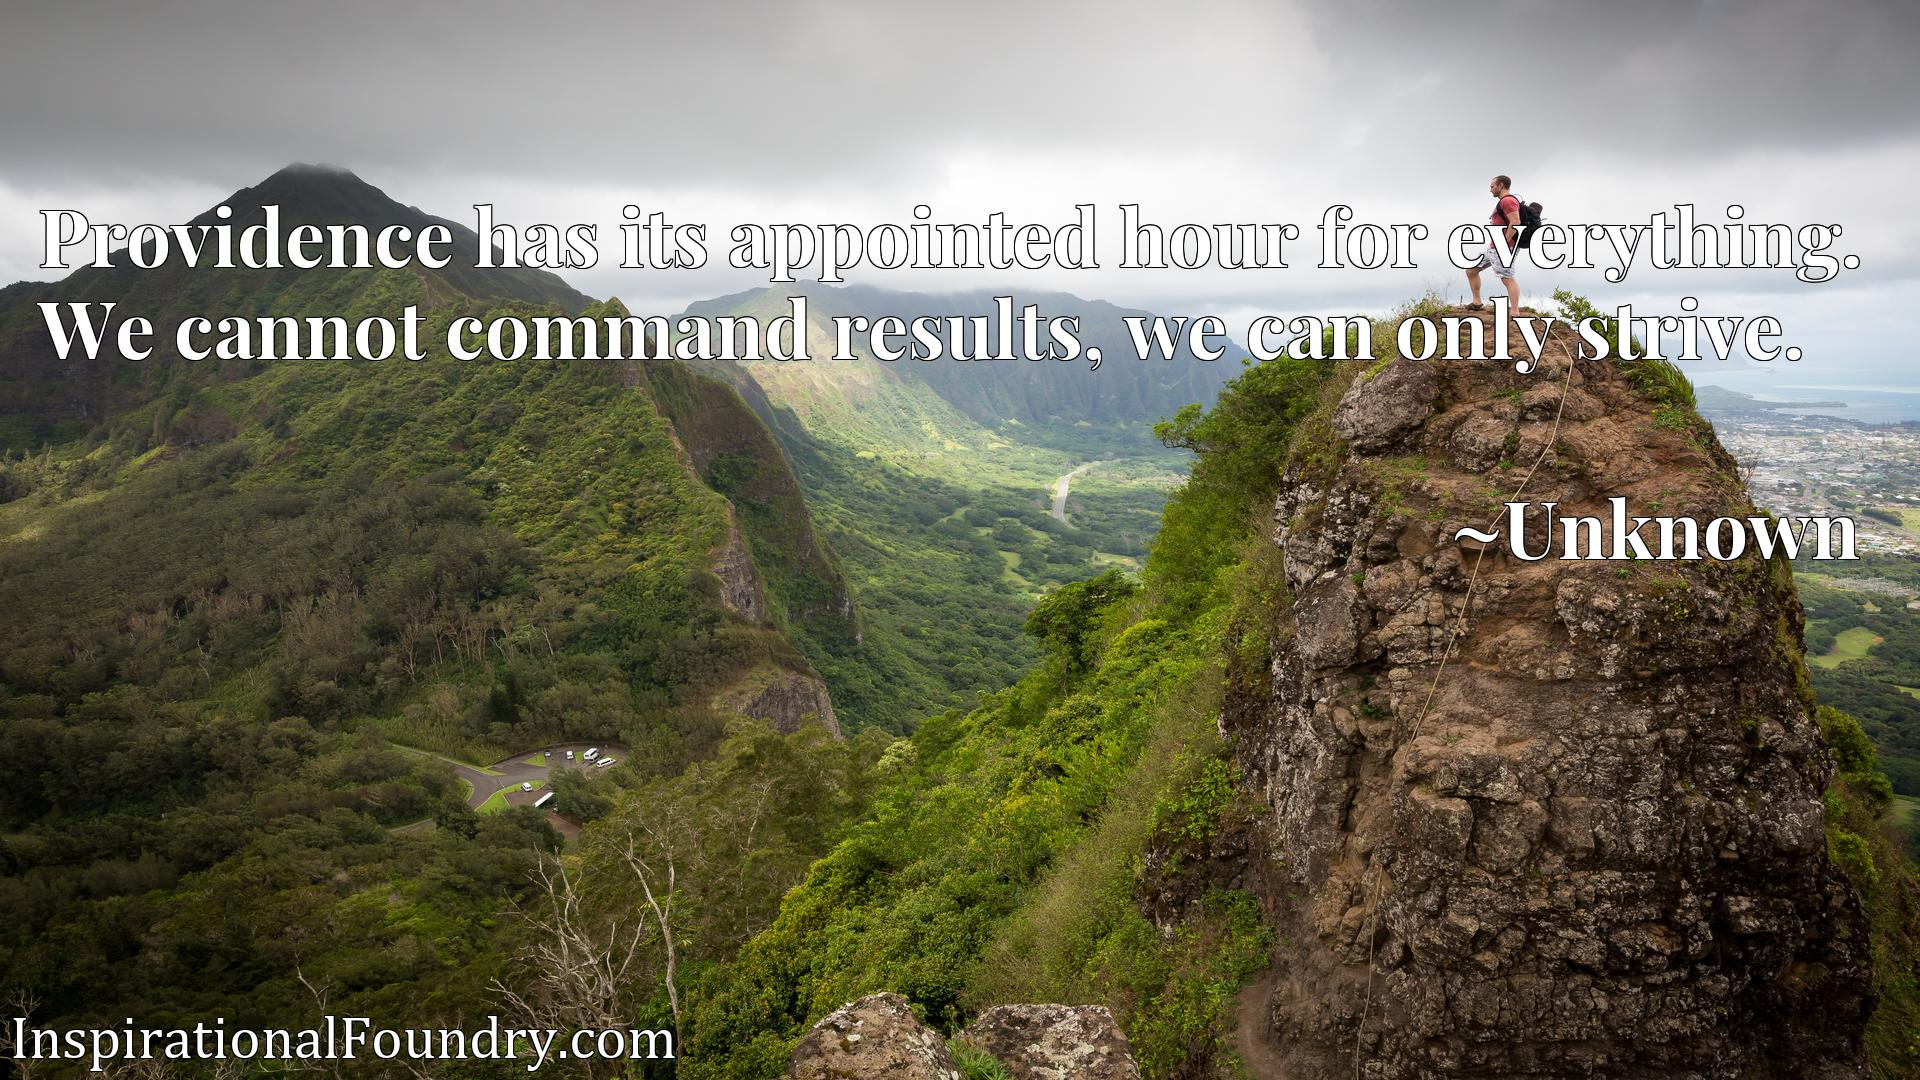 Providence has its appointed hour for everything. We cannot command results, we can only strive.